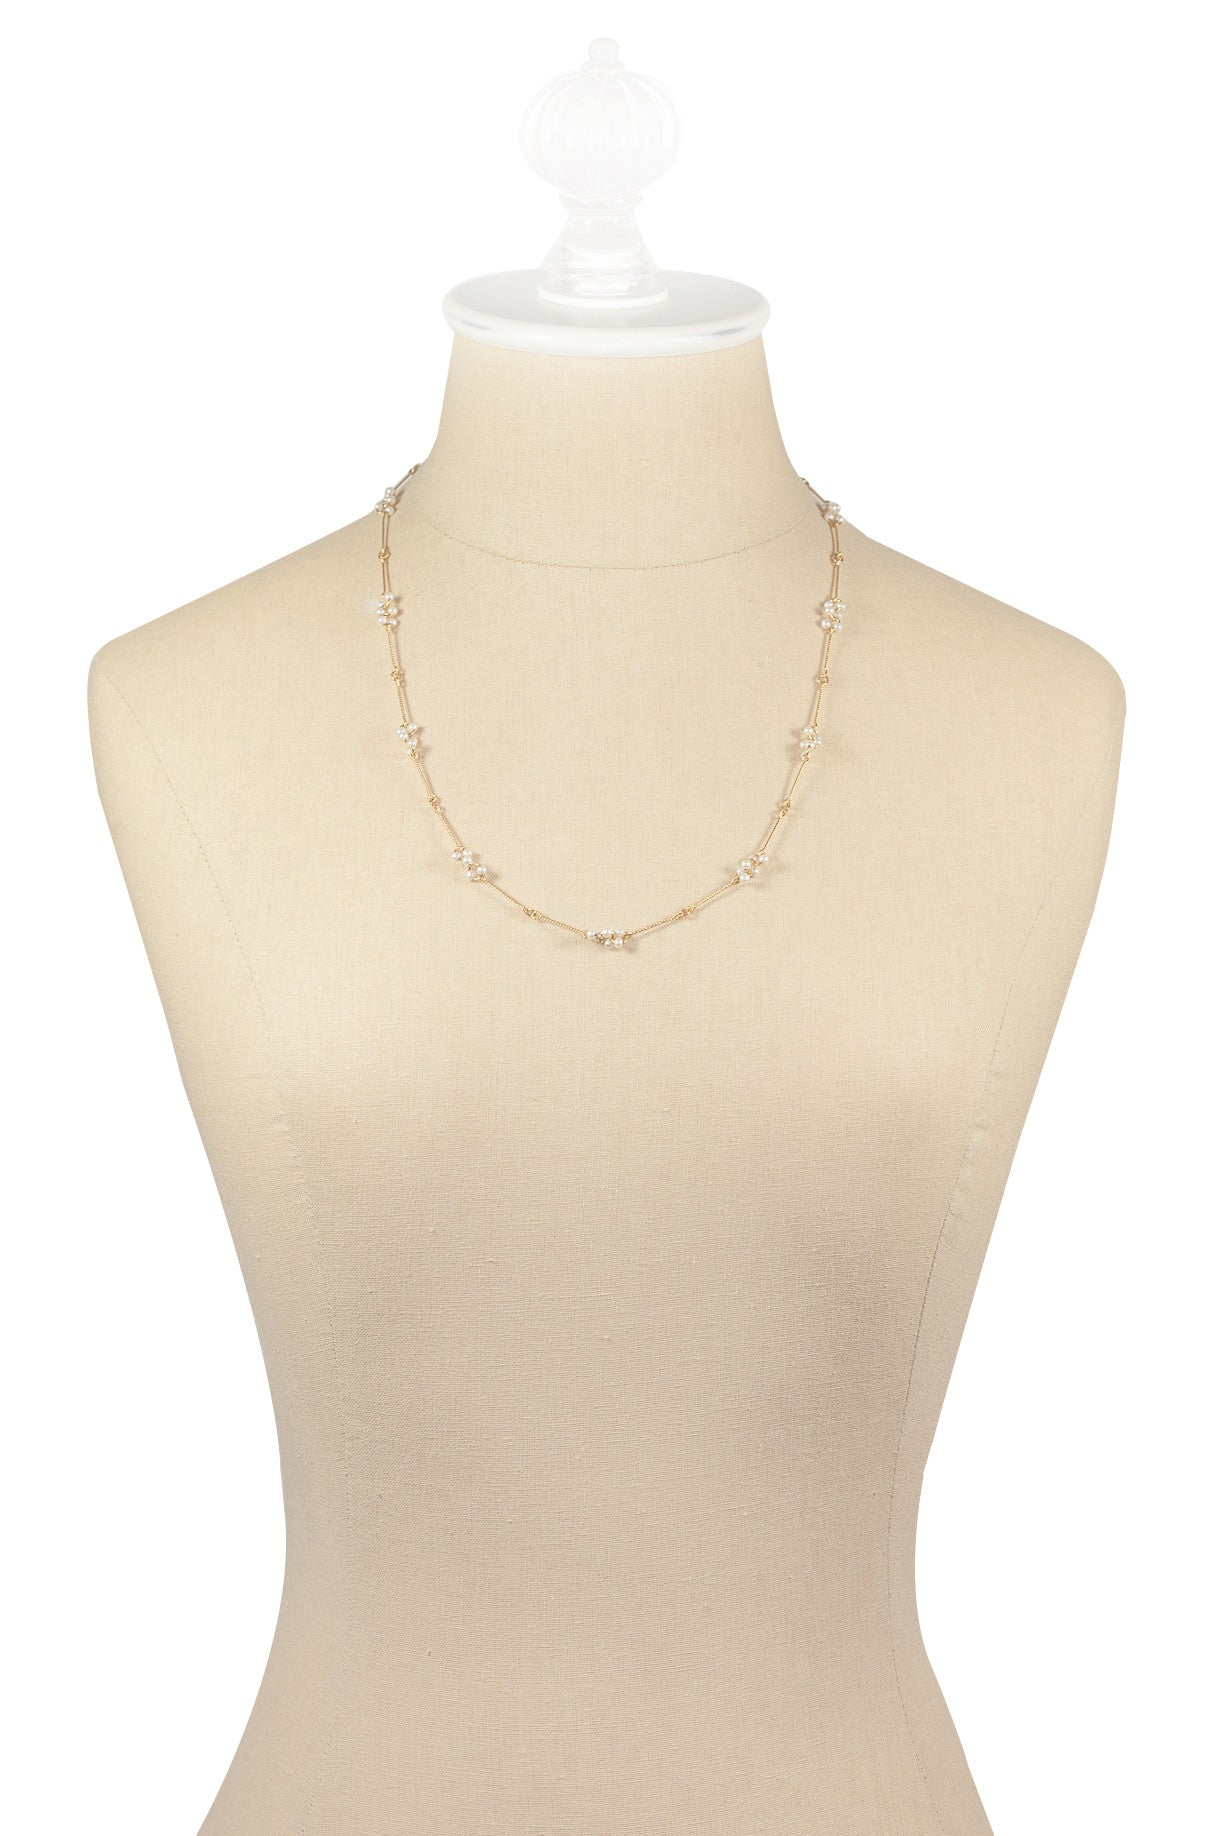 80's__Avon__Pearl Bunches Necklace